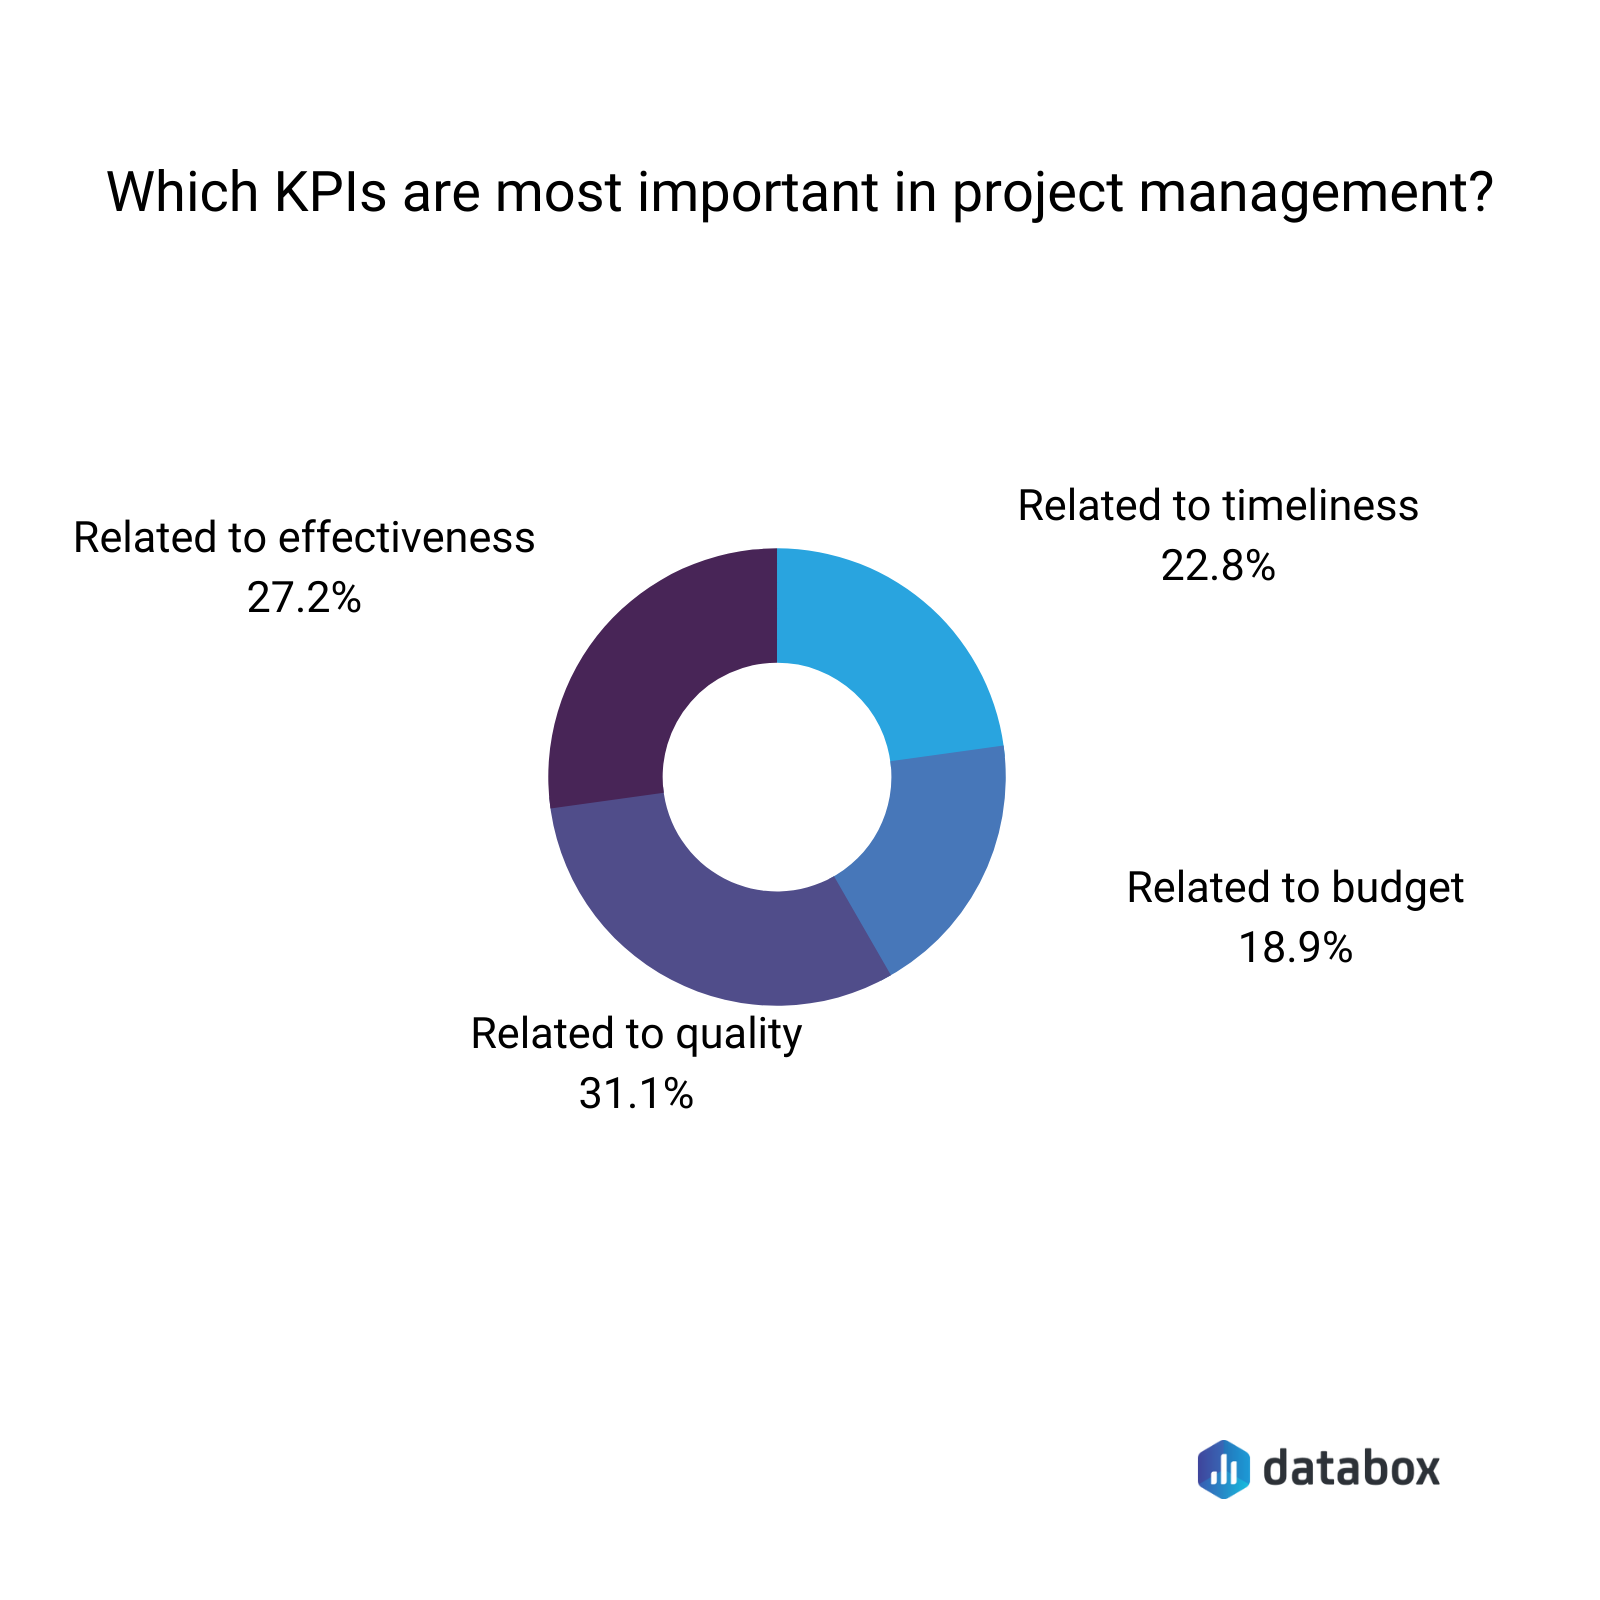 which kpis are most important in project management